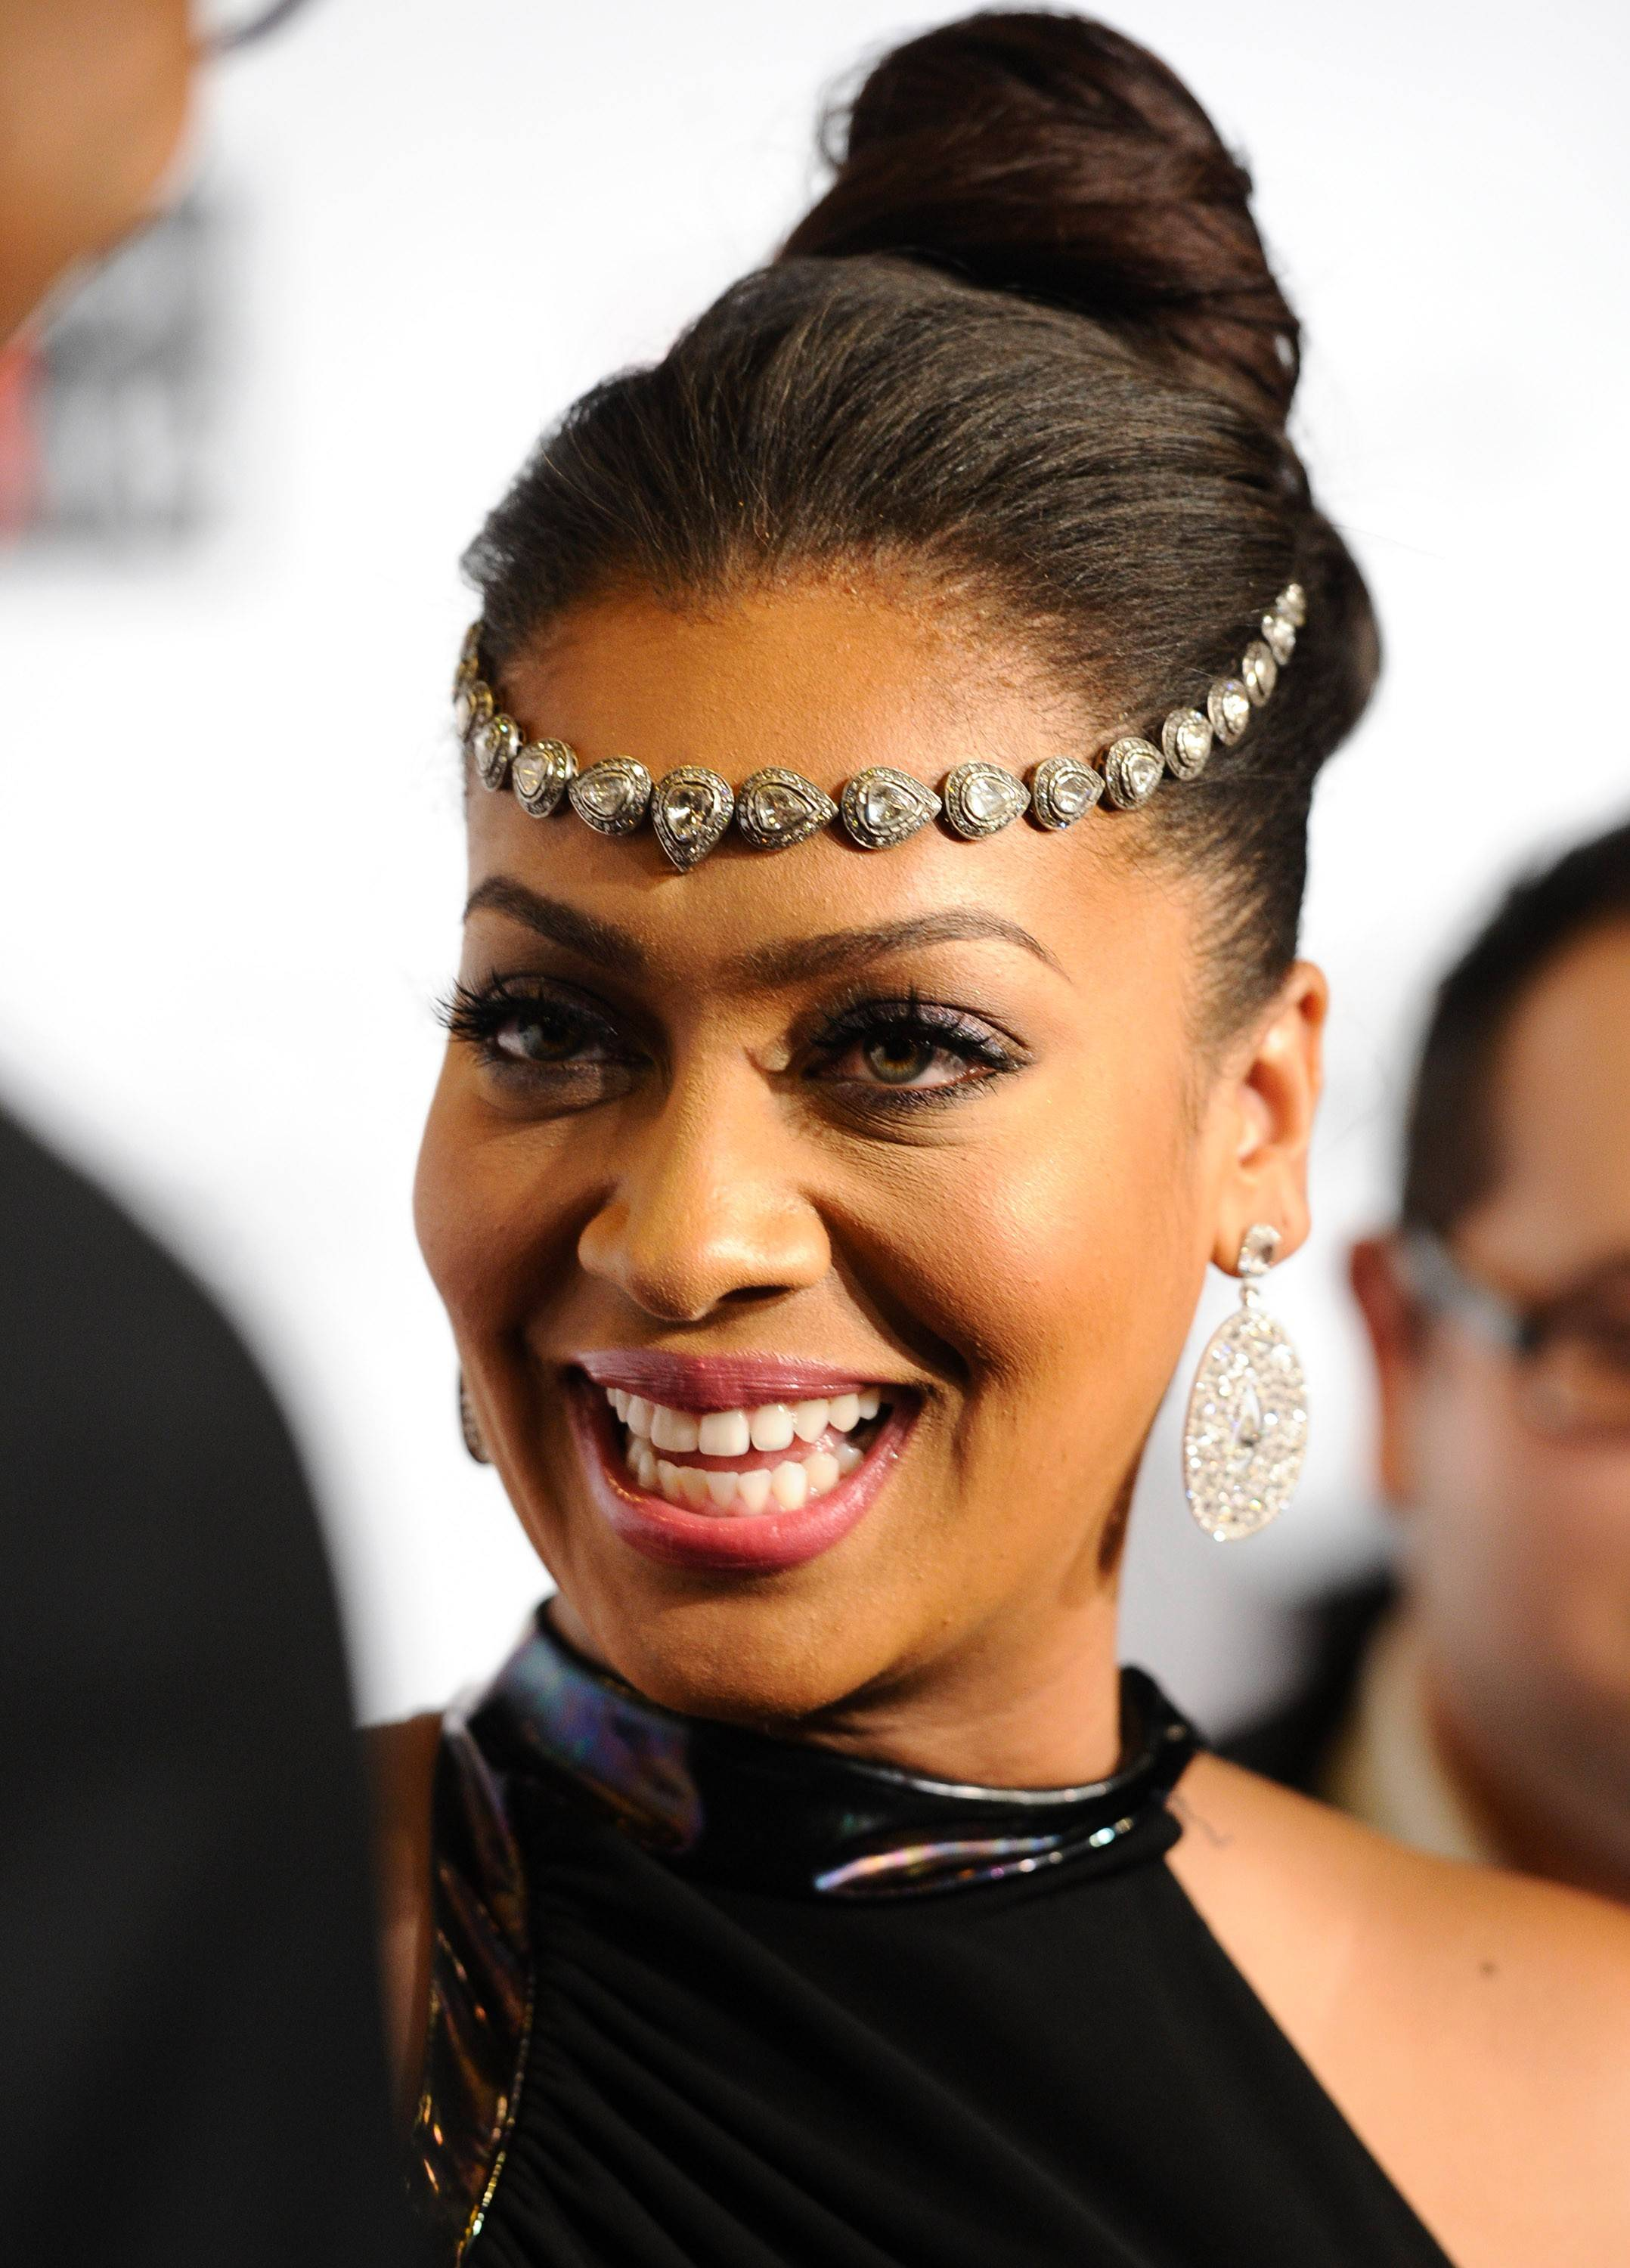 La La Vasquez, who is married to Knicks star Carmelo Anthony, has her own career as an actor and designer.